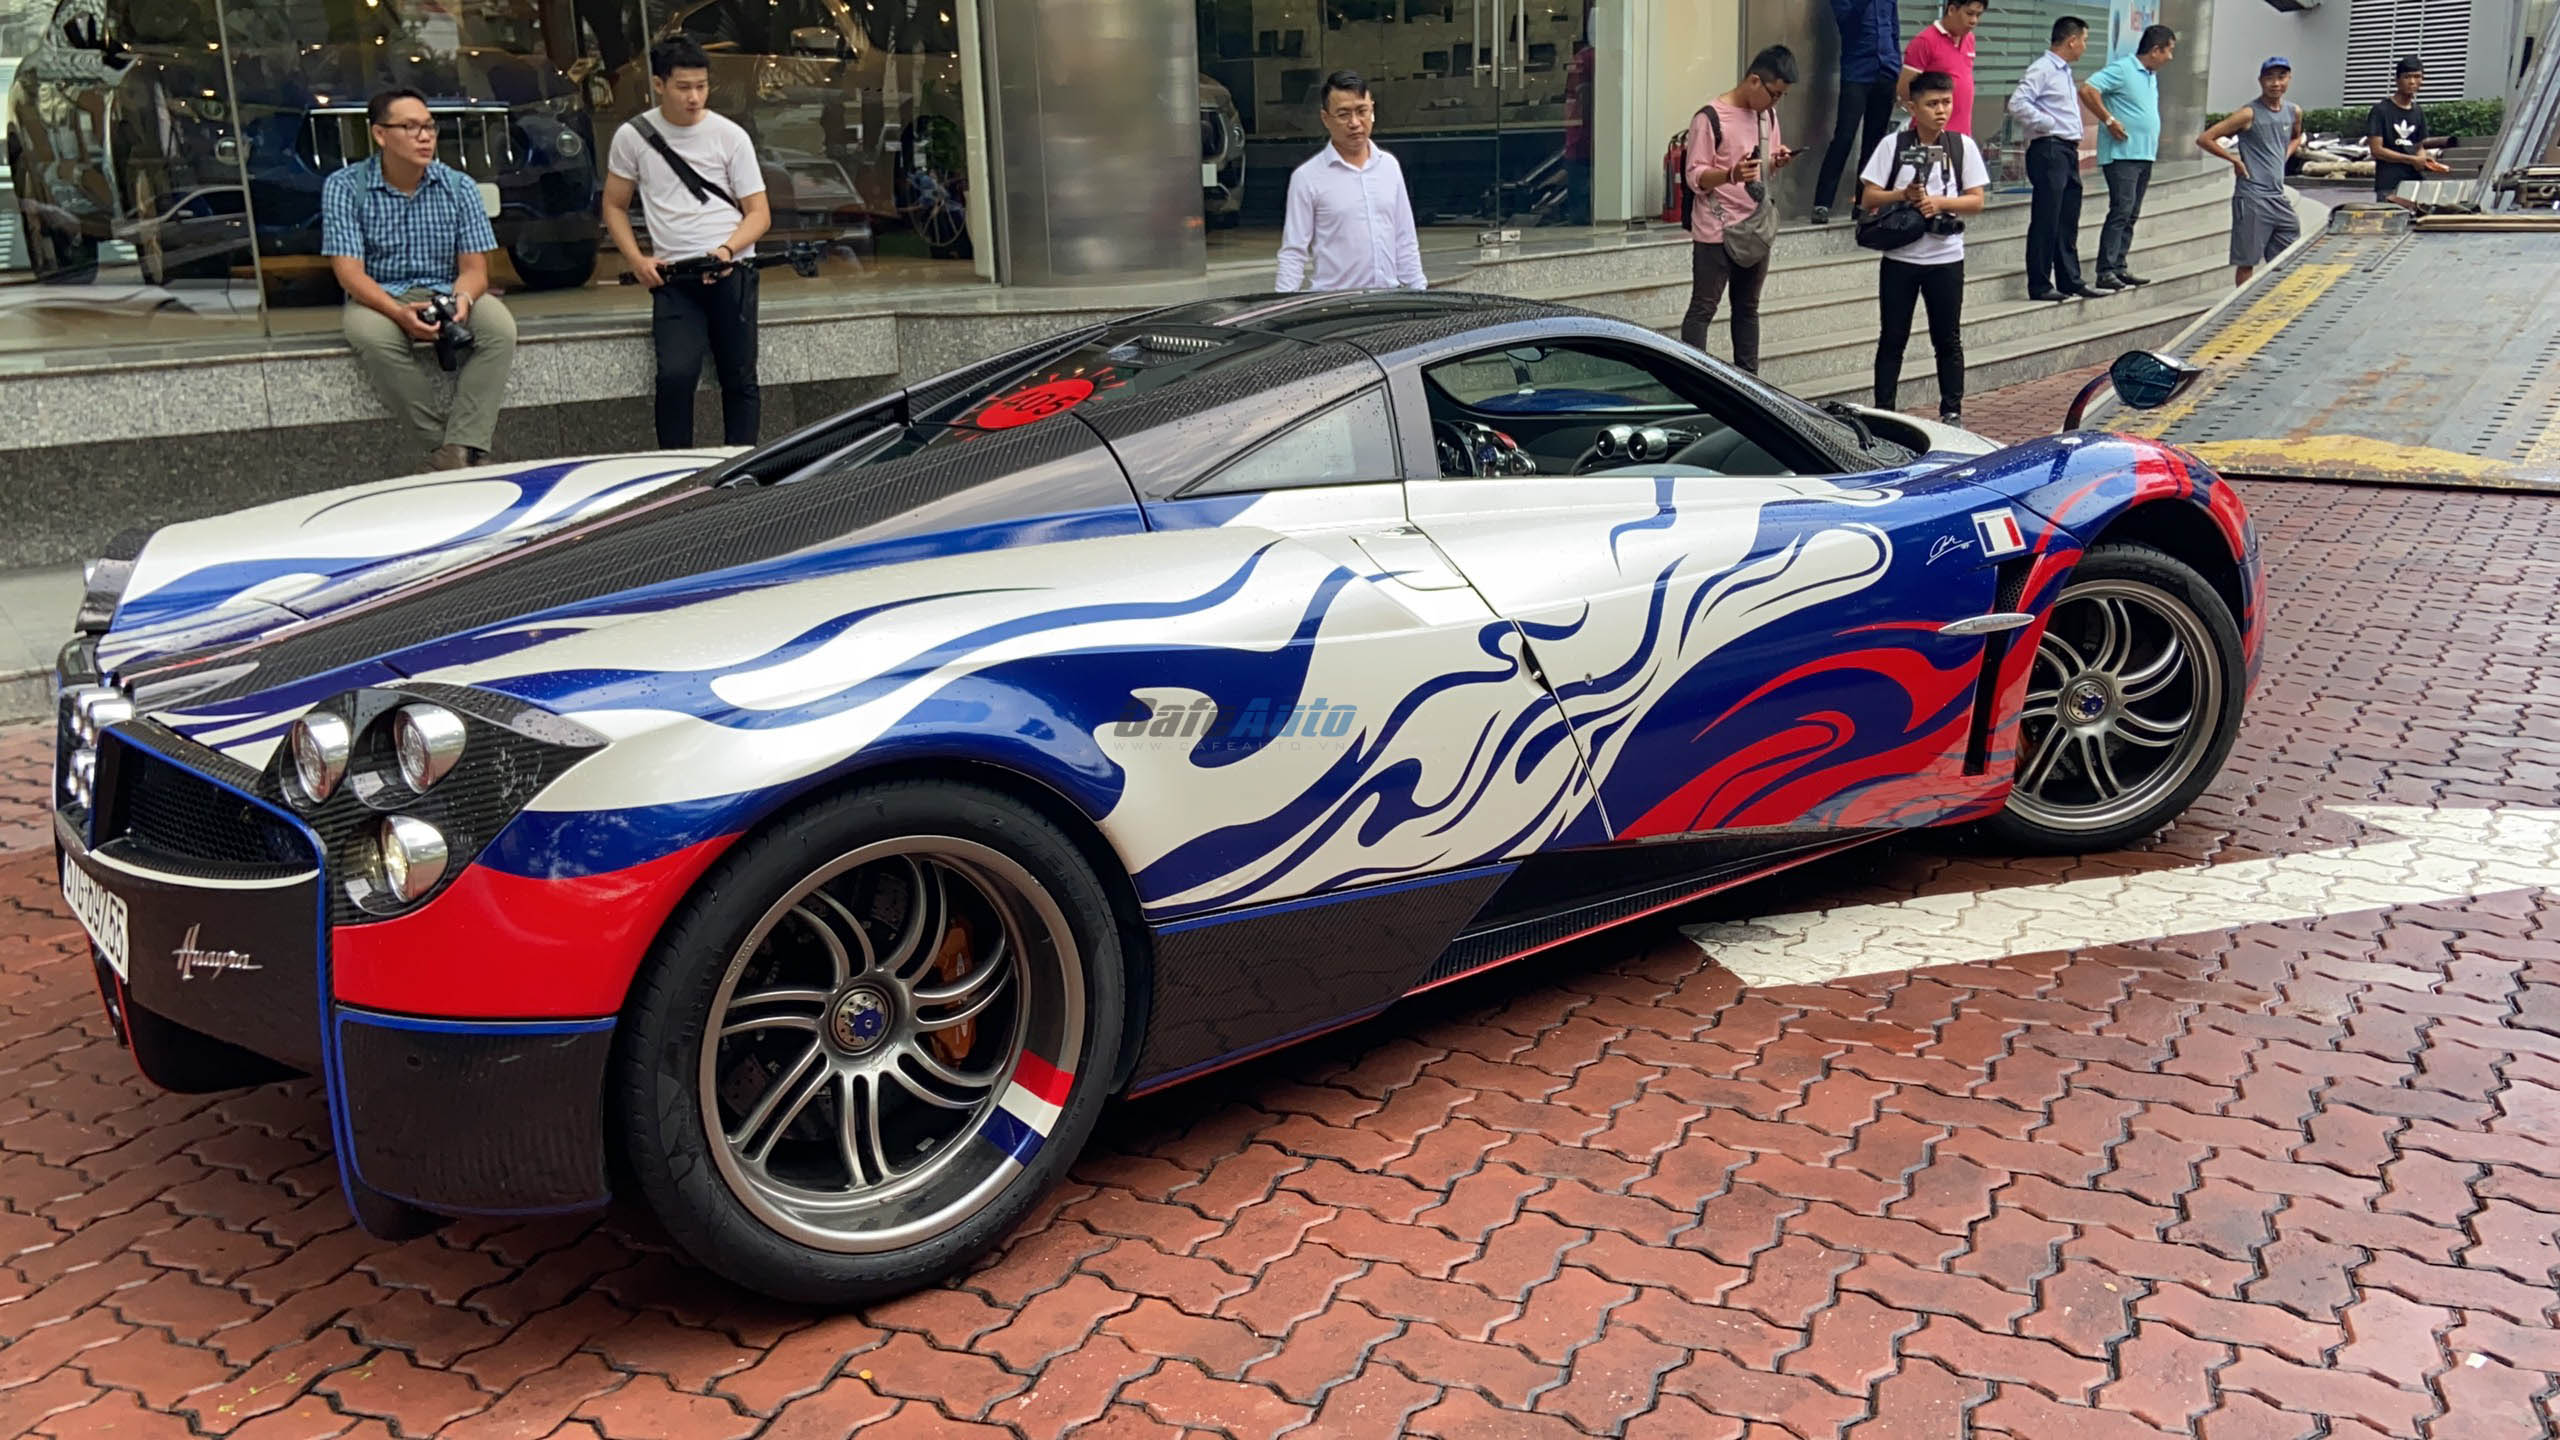 paganihuayra-cafeautovn-9